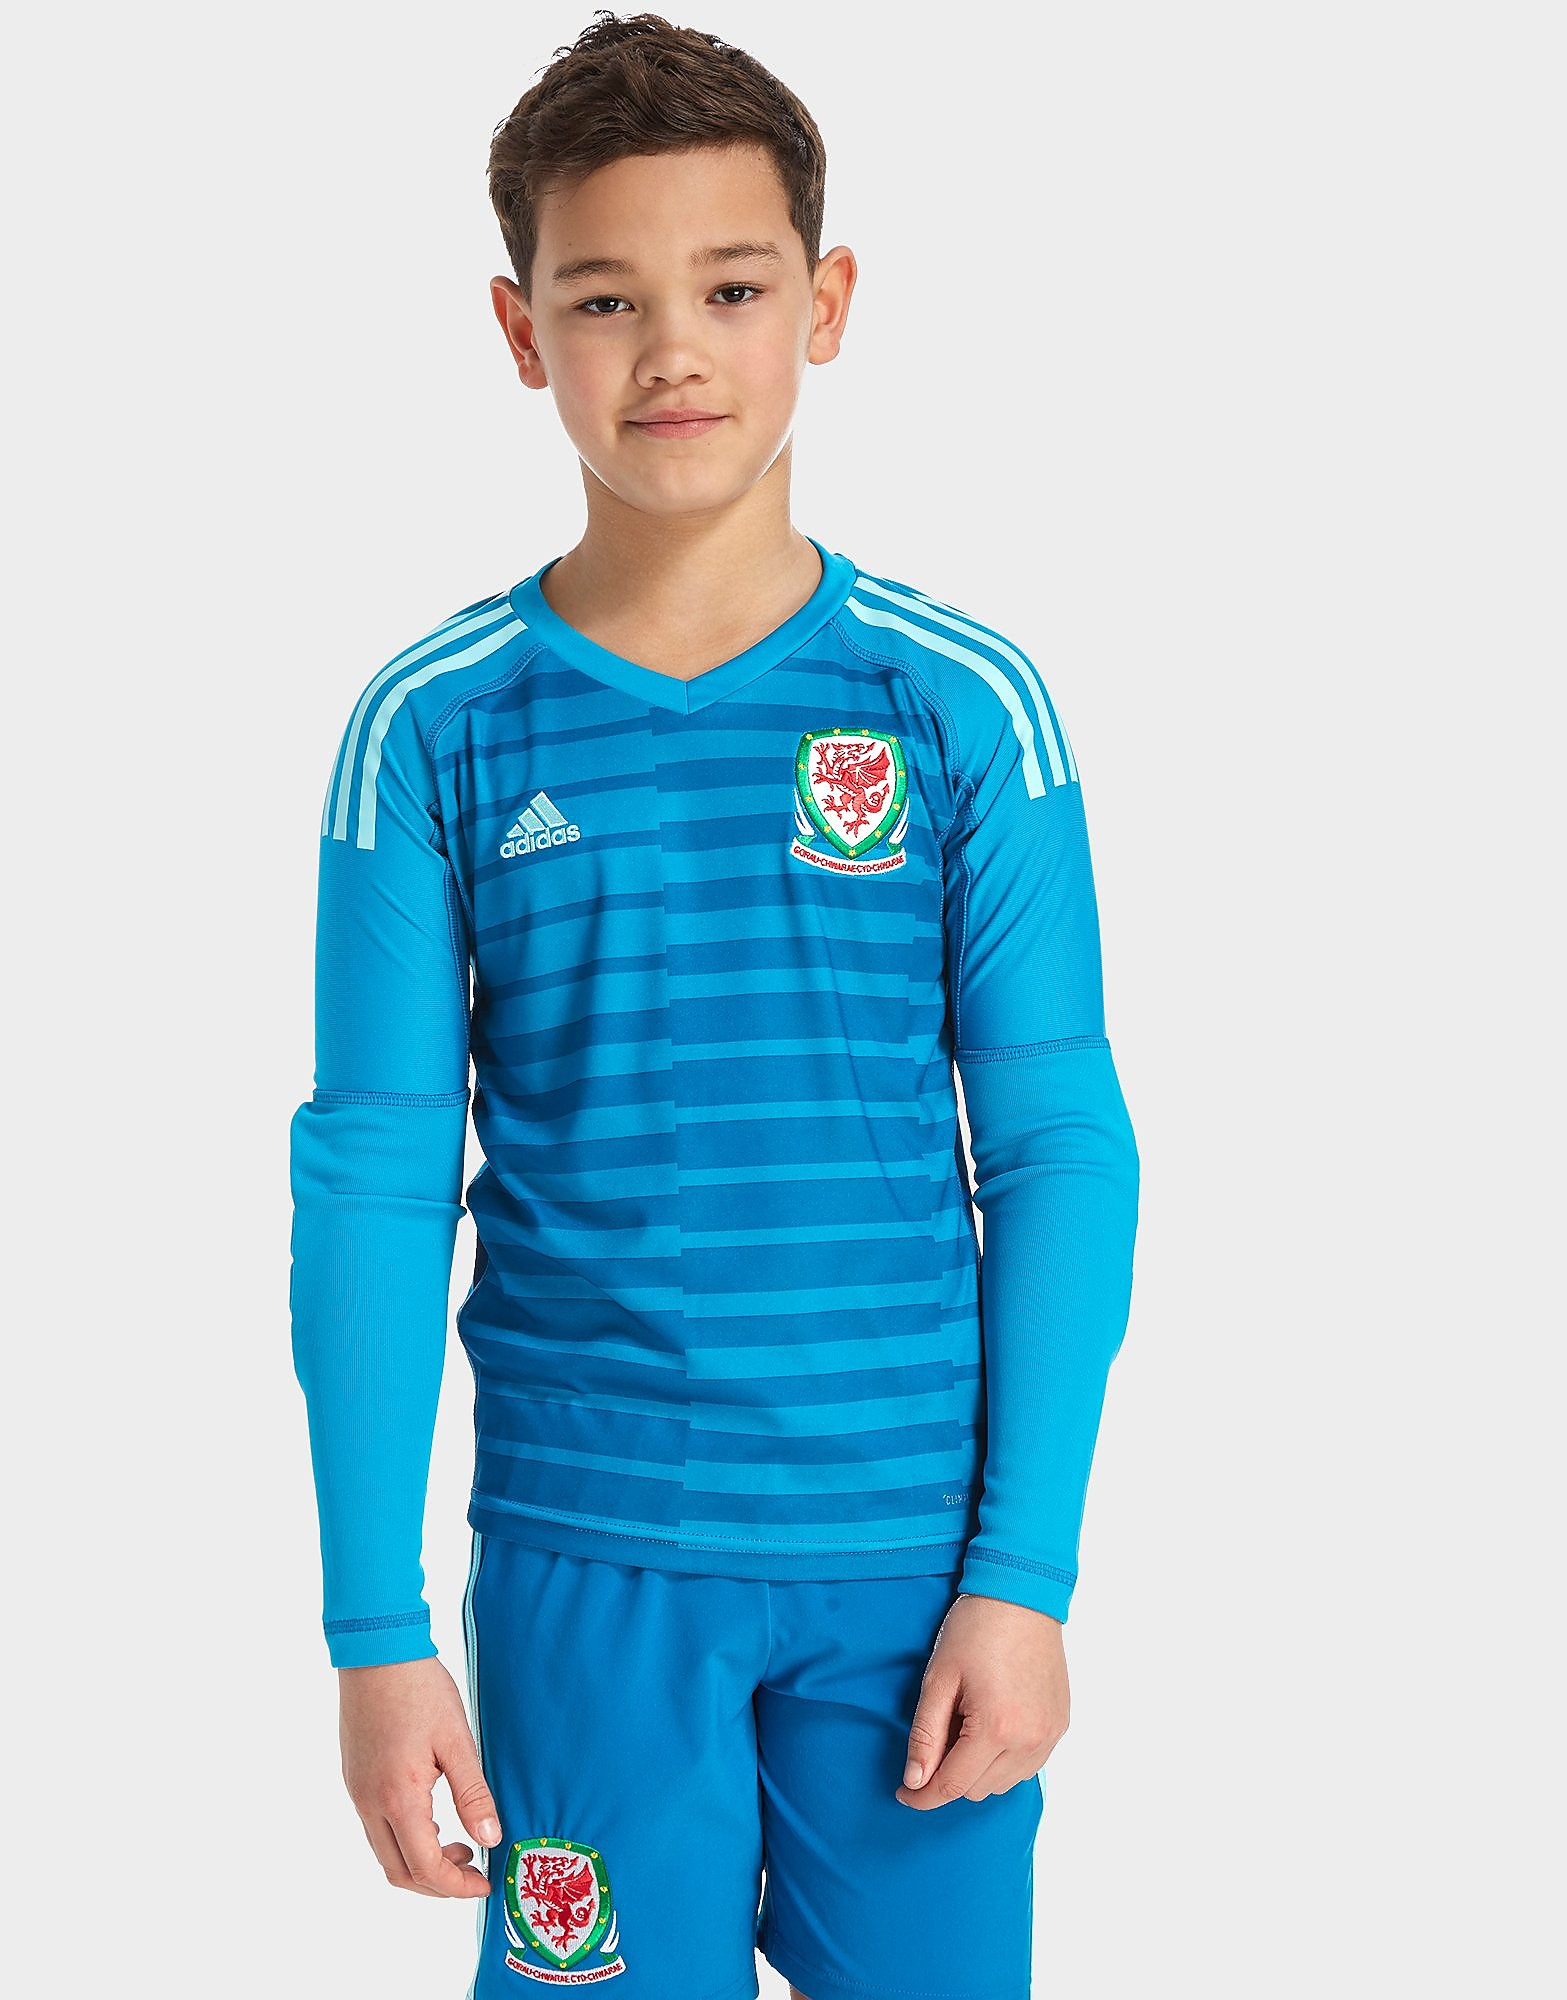 adidas Wales 2018 Home Goalkeeper Shirt Junior